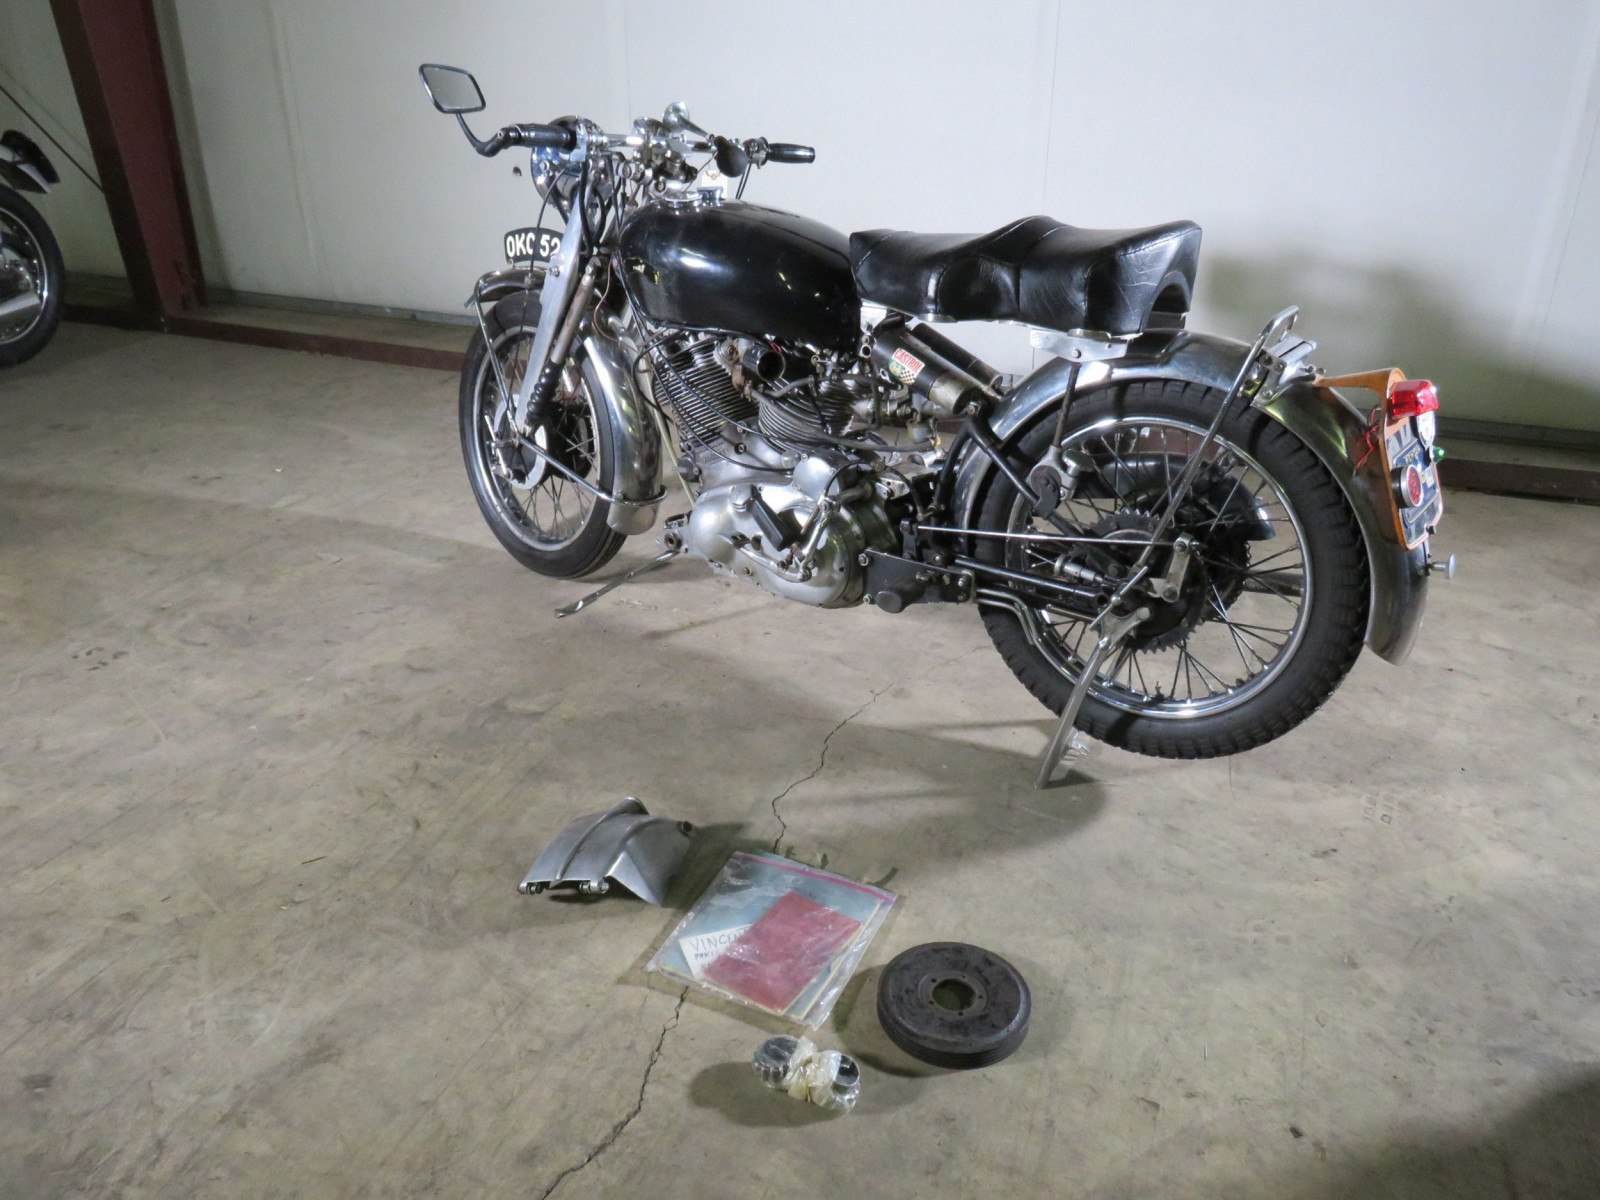 1952 Rare Vincent Motorcycle - Image 20